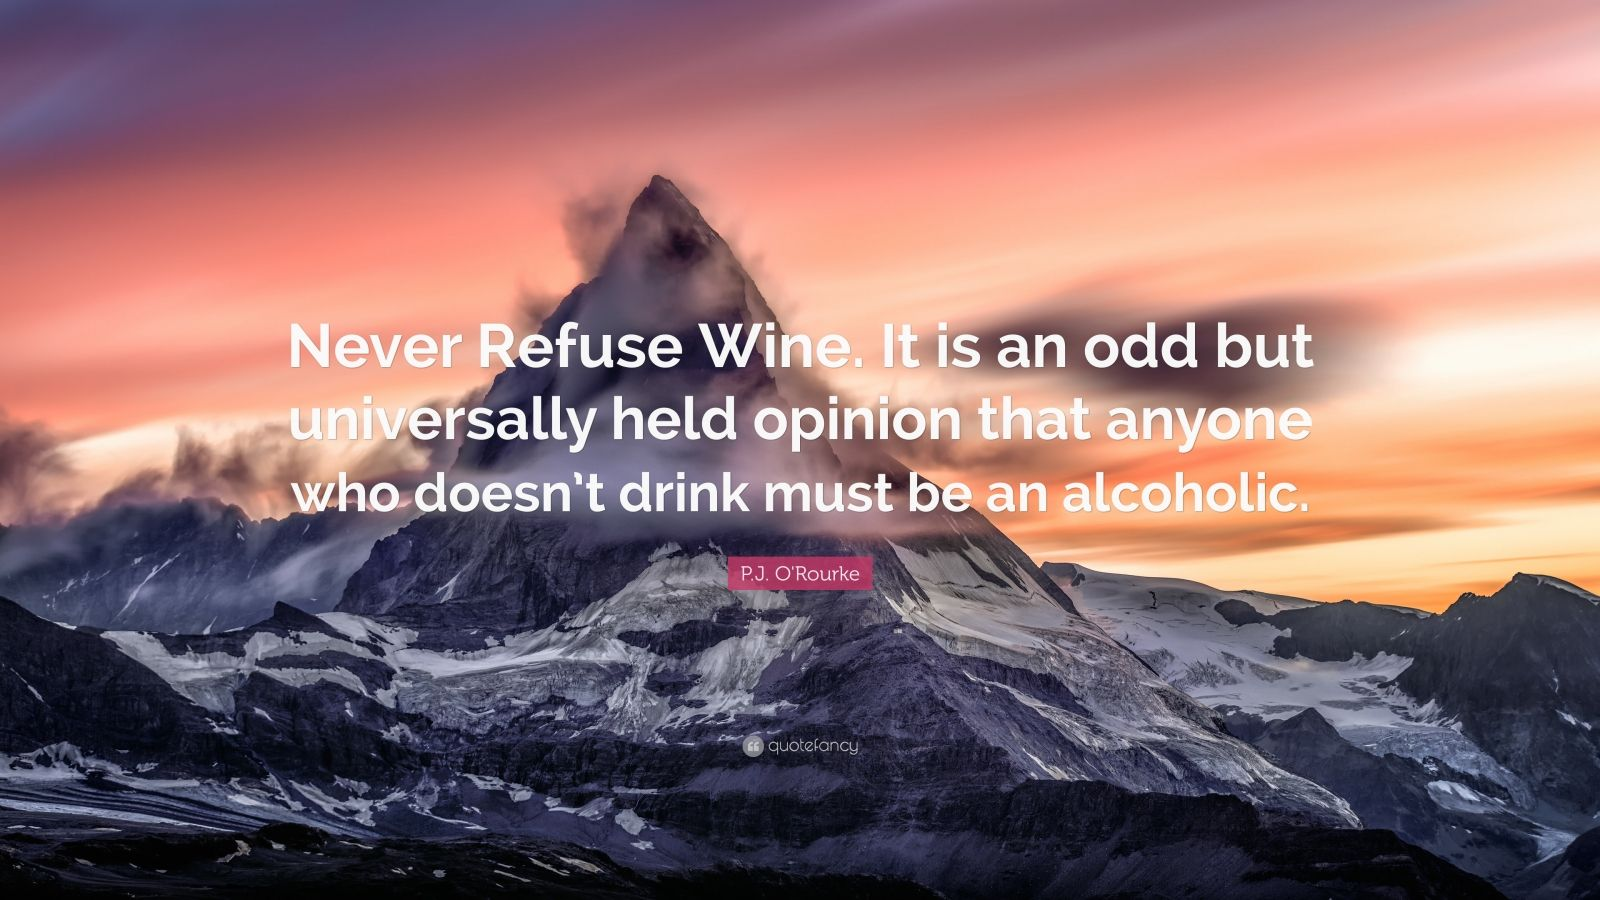 """P.J. O'Rourke Quote: """"Never Refuse Wine. It is an odd but universally held opinion that anyone who doesn't drink must be an alcoholic."""""""